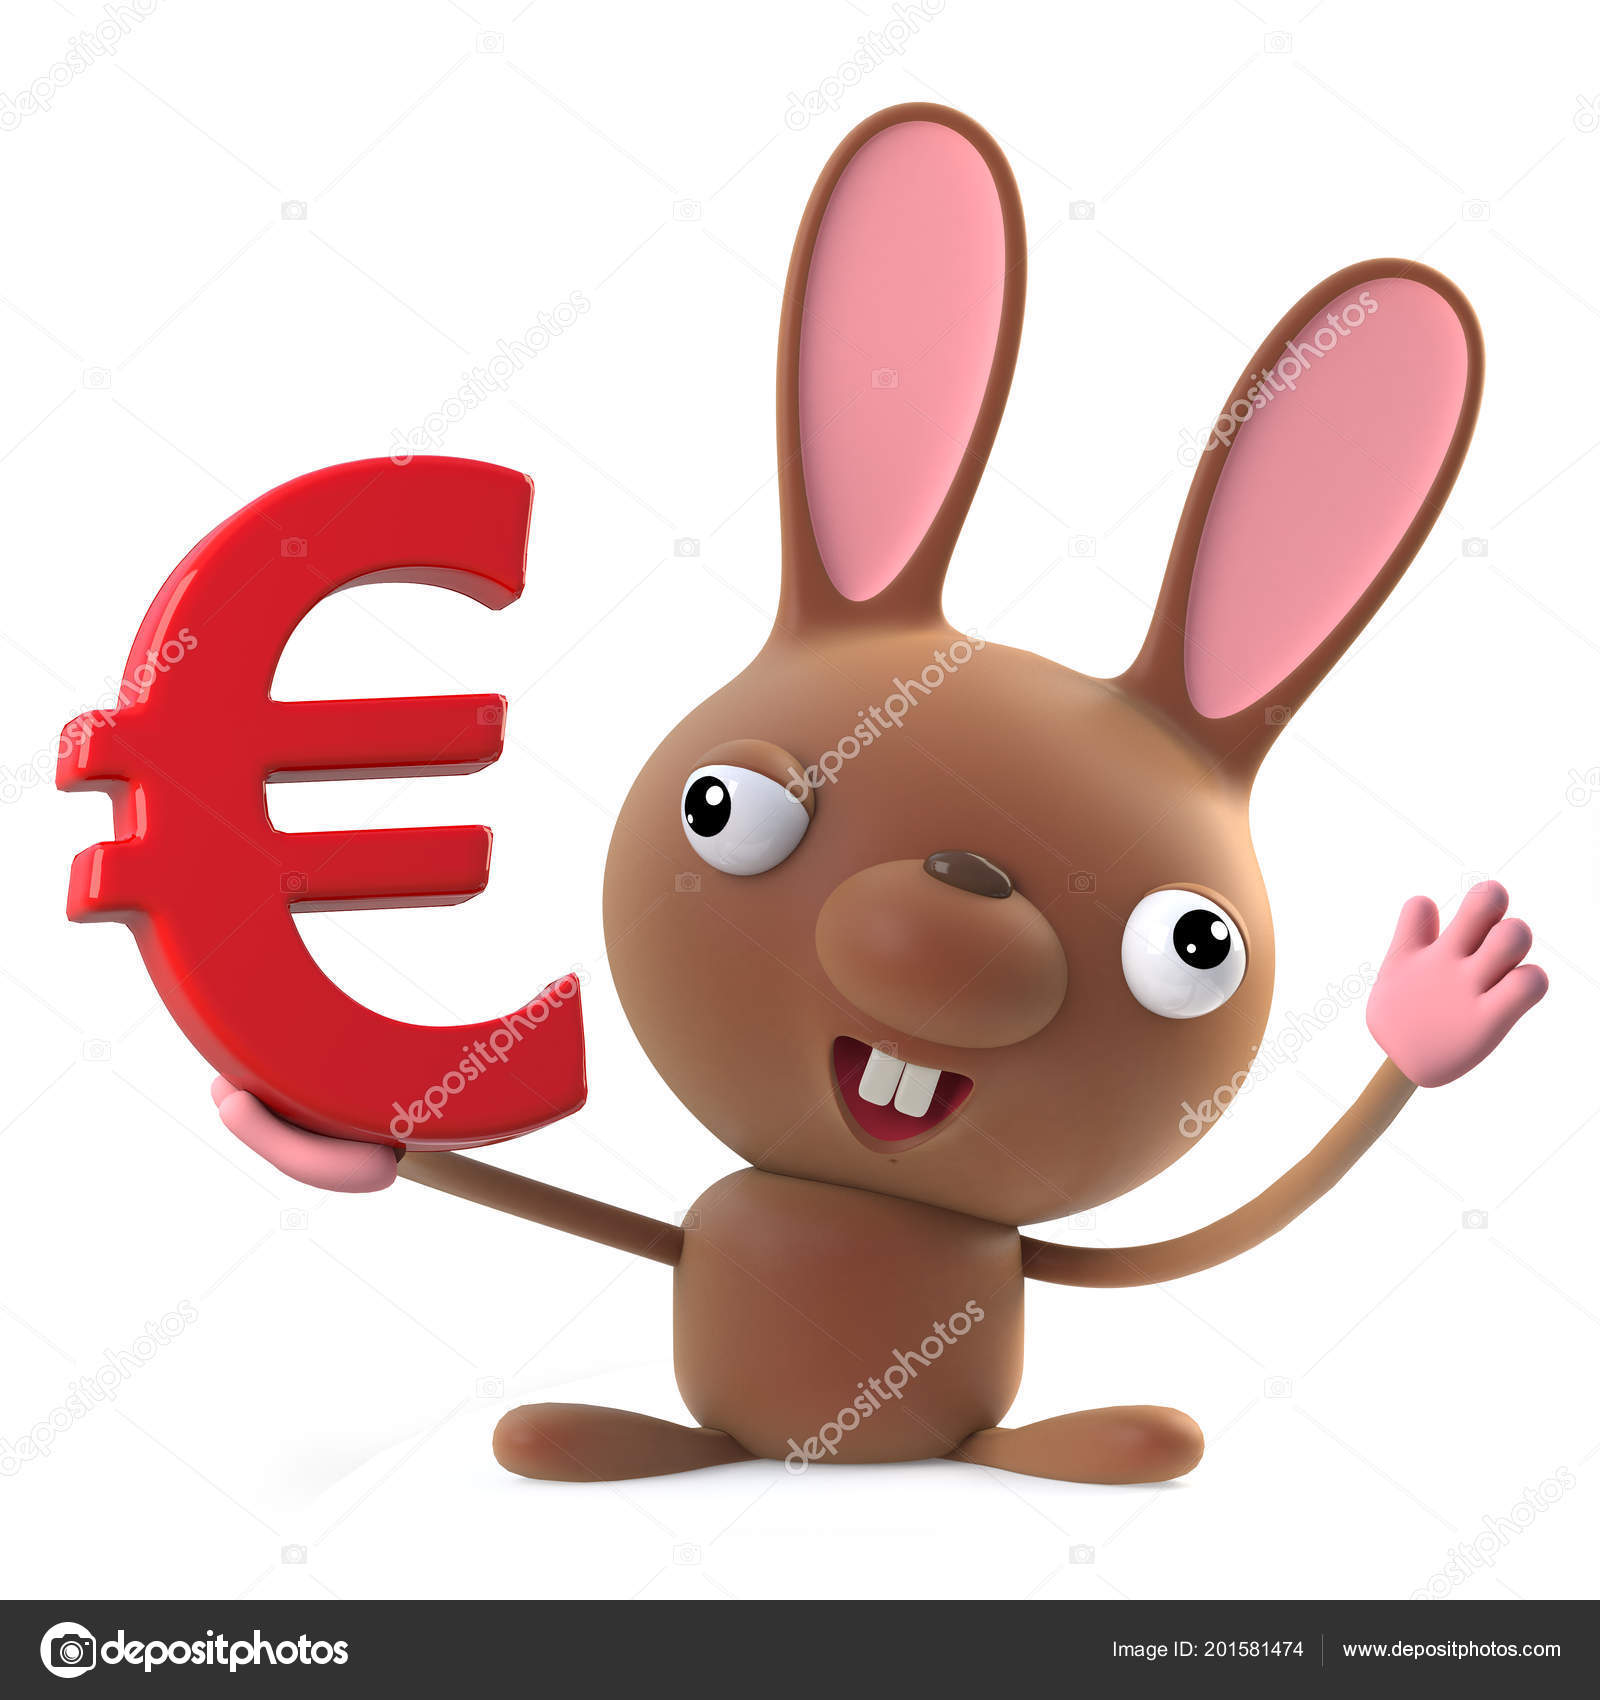 Render Cute Cartoon Easter Bunny Rabbit Character Holding Euro